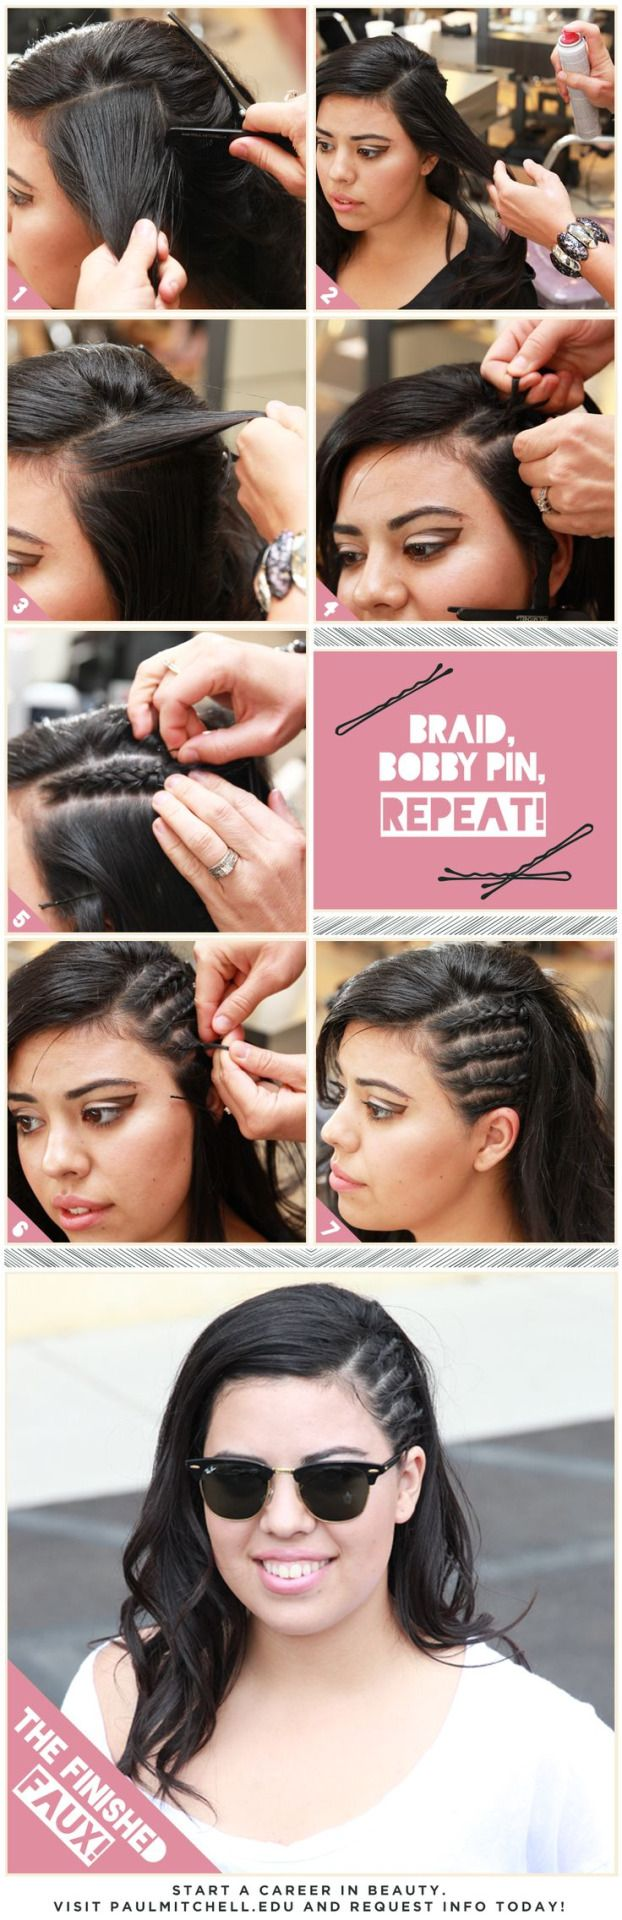 Braids Hair : Photo